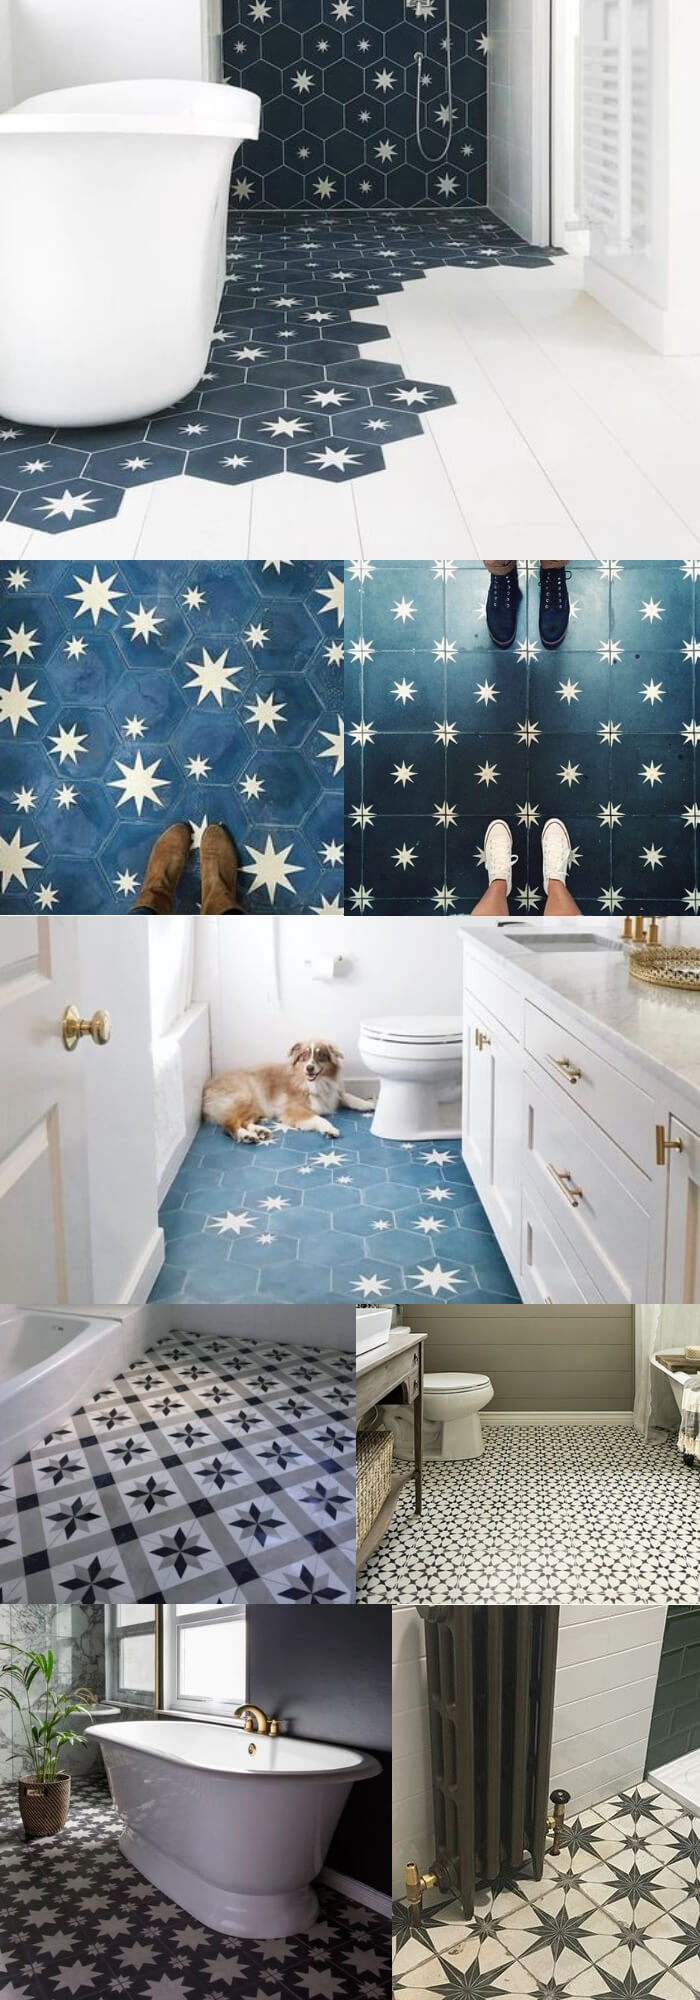 Stars bathroom floor tile ideas